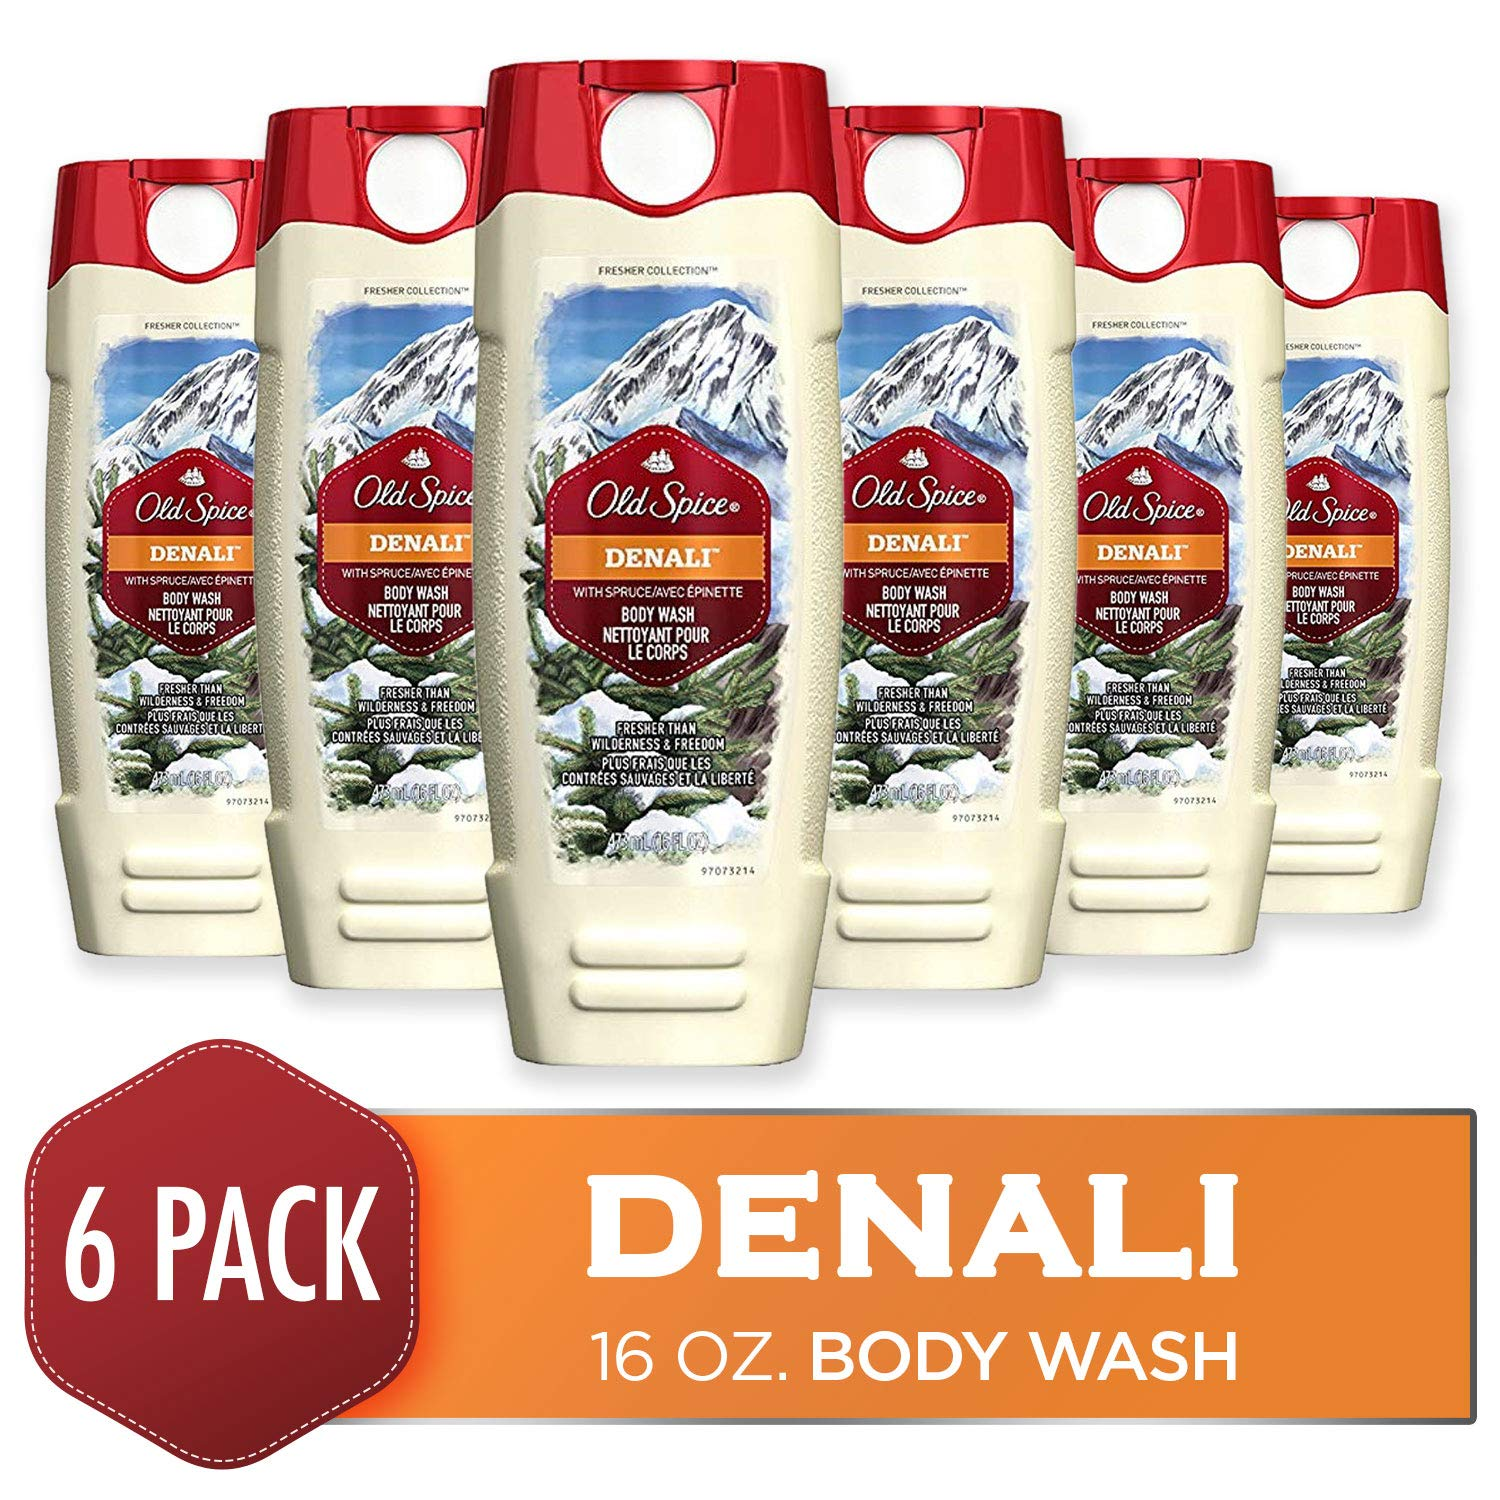 Body Wash for Men by Old Spice, Fresher Collection Men's Body Wash, Denali, 16 Fluid Ounce (Pack of 6)